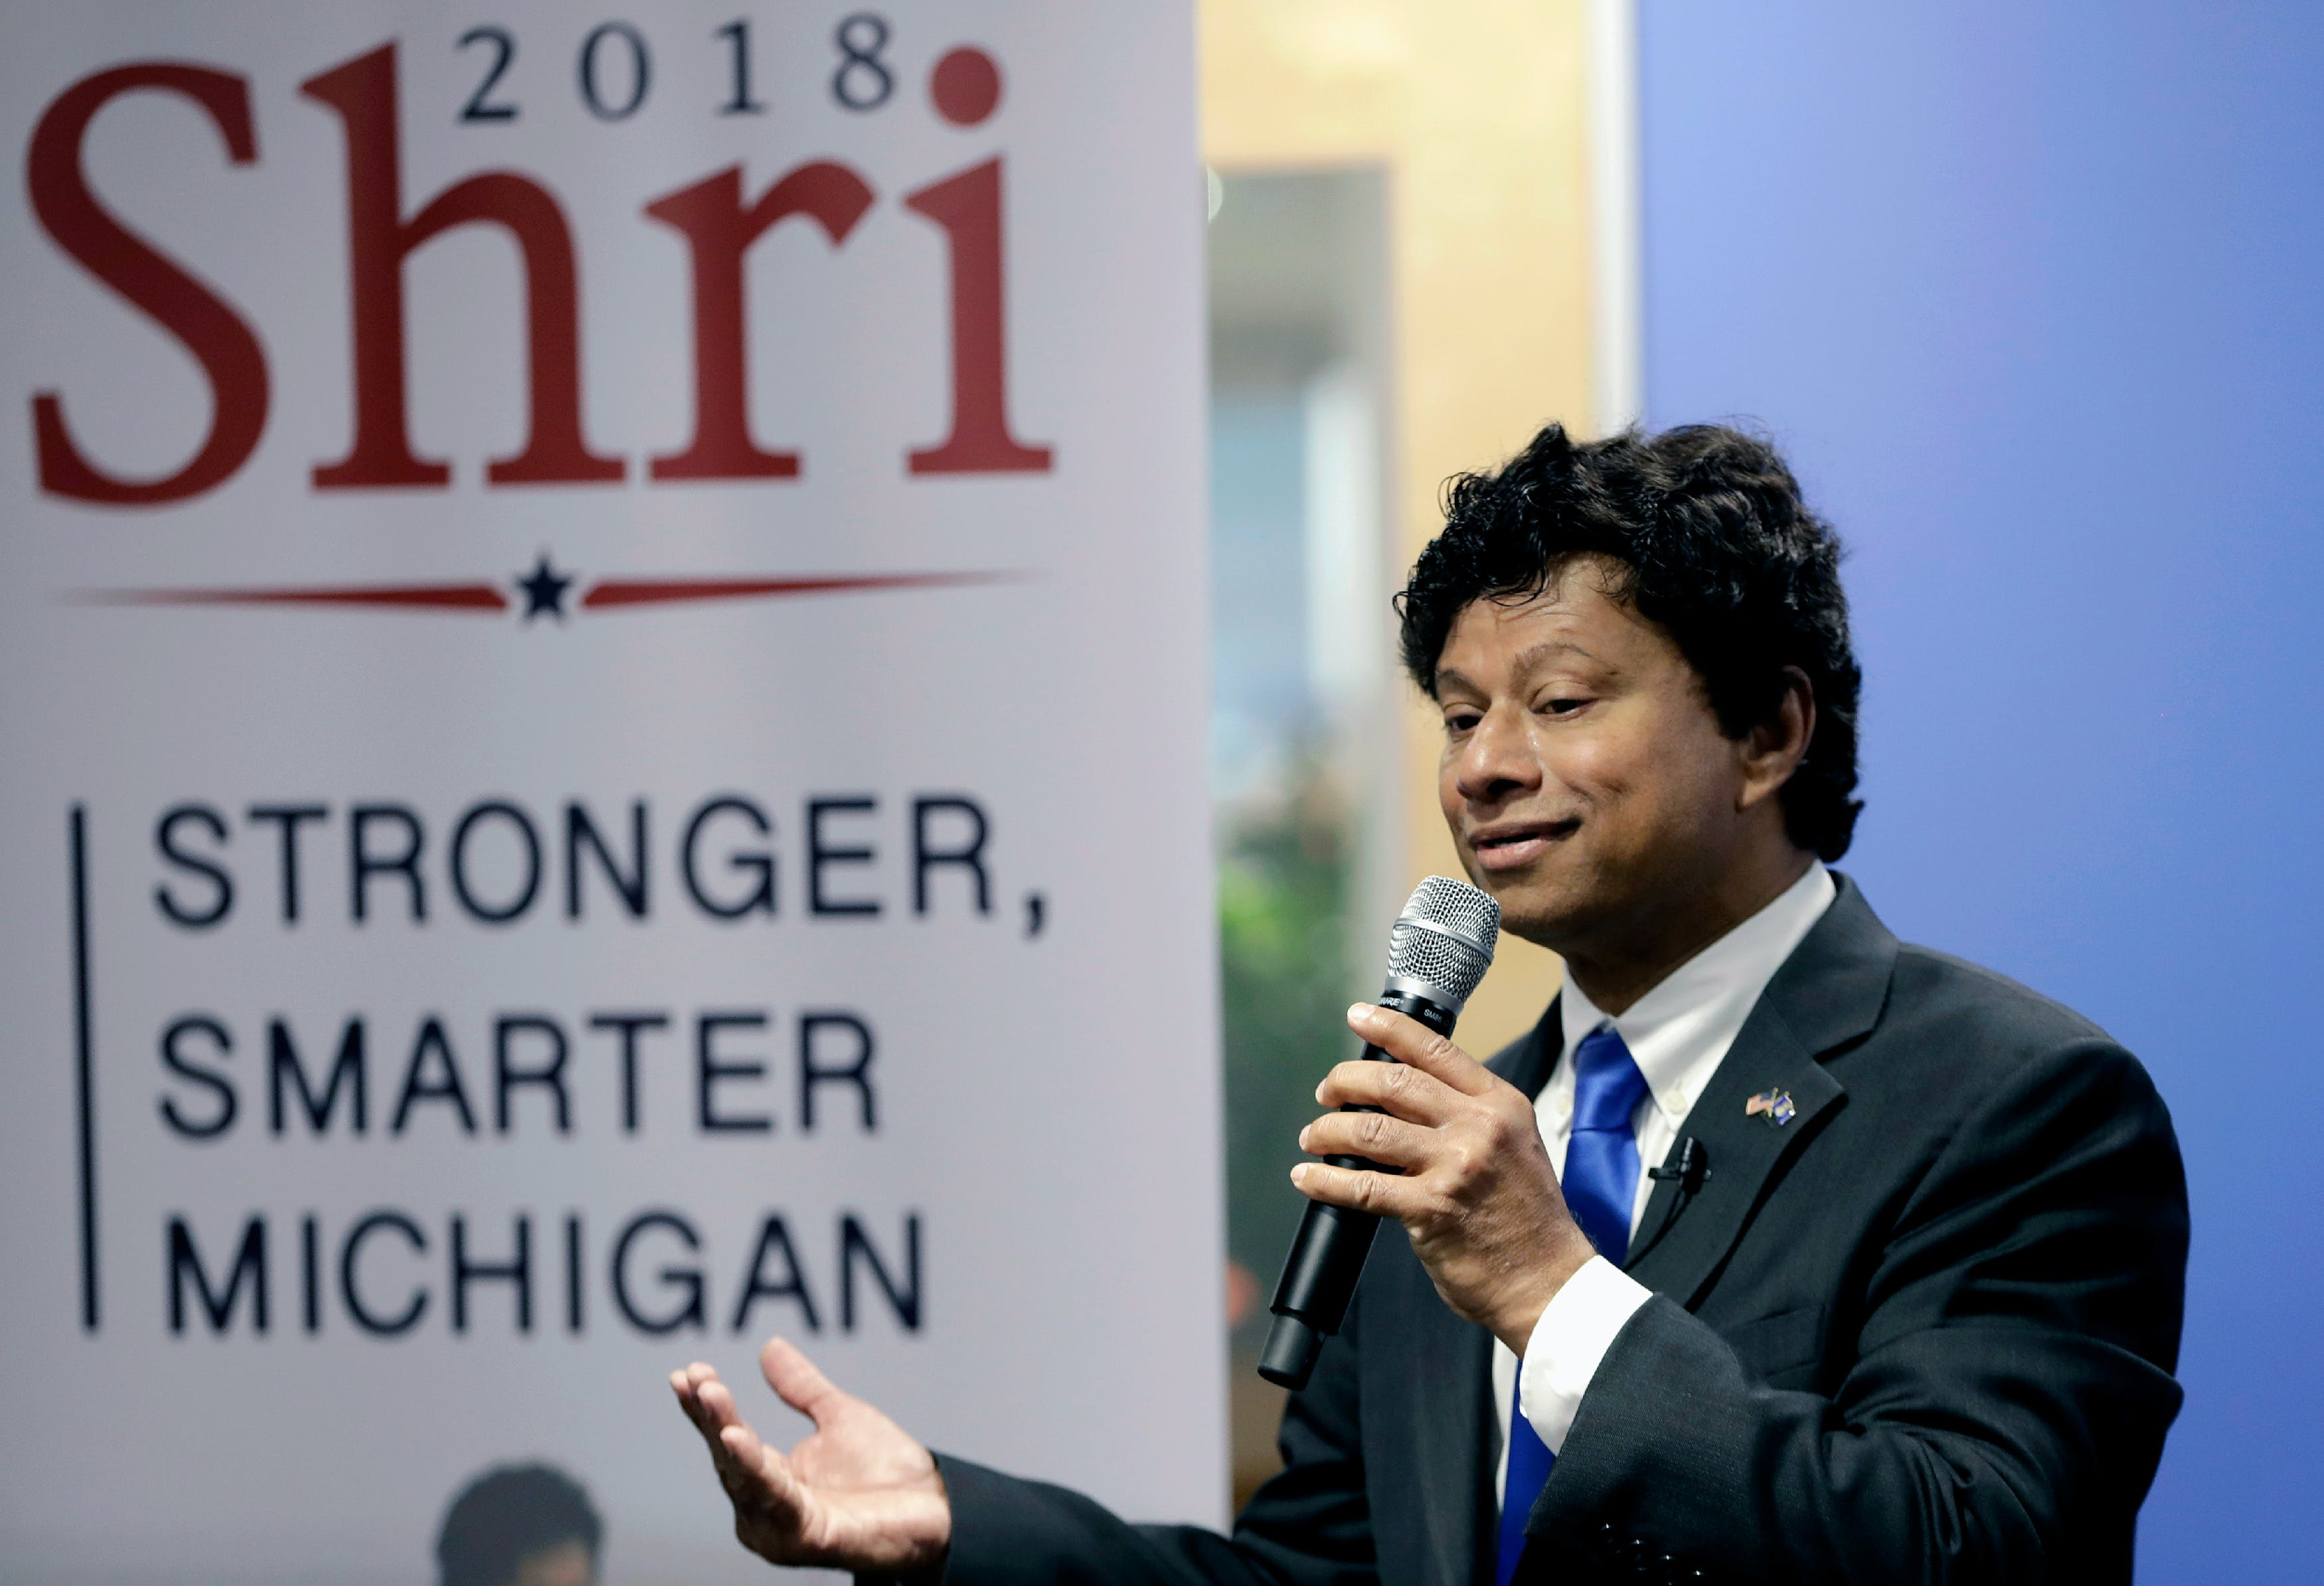 FILE - In this June 8, 2017, file photo, Shri Thanedar, announces his candidacy for Michigan governor in Detroit. Thannedar, a Democrat, faces Gretchen Whitmer and Abdul El-Sayed in the Aug. 7, 2018 primary. (AP Photo/Carlos Osorio, File)